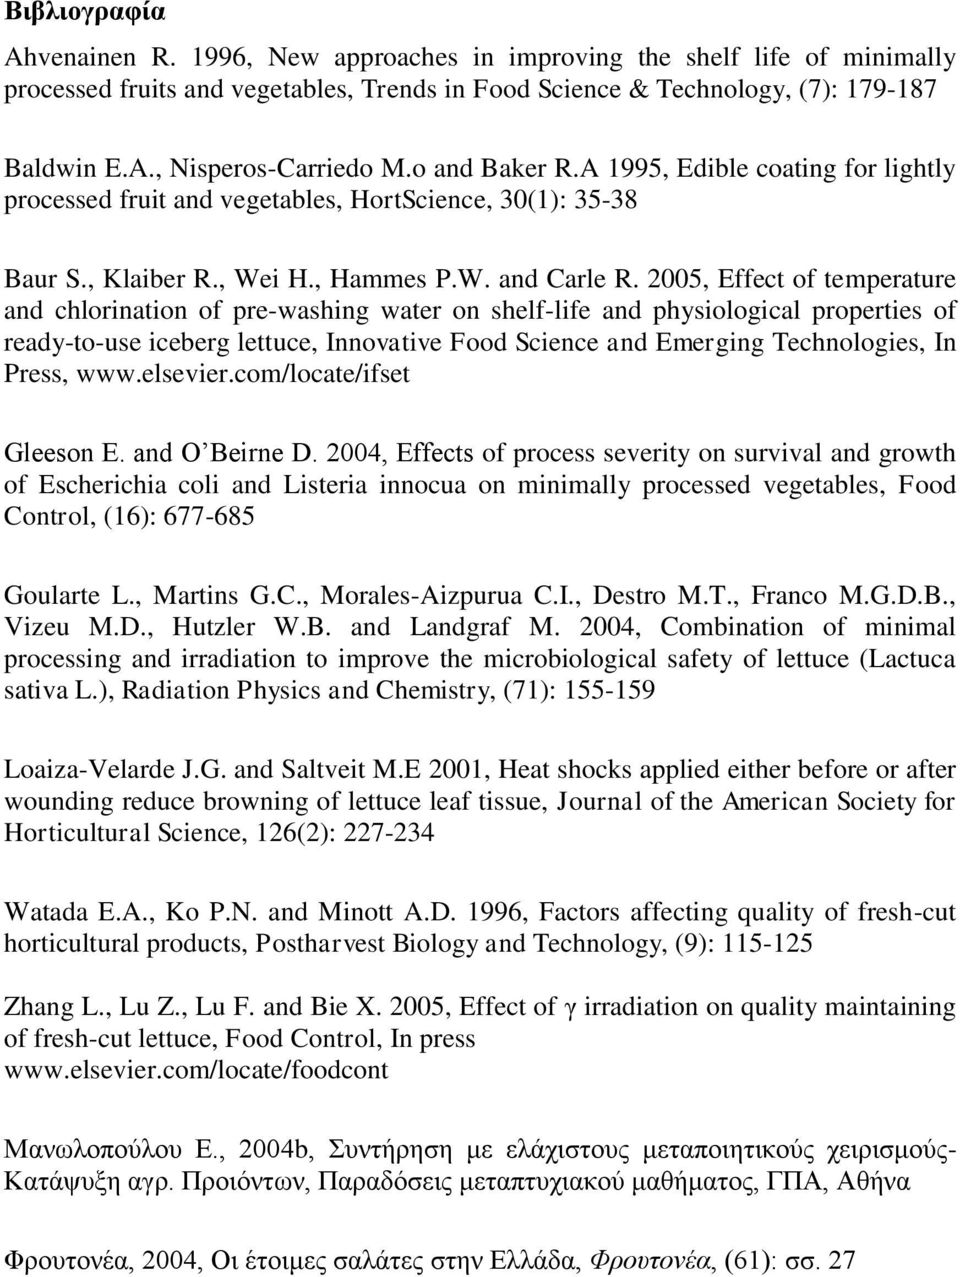 2005, Effect of temperature and chlorination of pre-washing water on shelf-life and physiological properties of ready-to-use iceberg lettuce, Innovative Food Science and Emerging Technologies, In